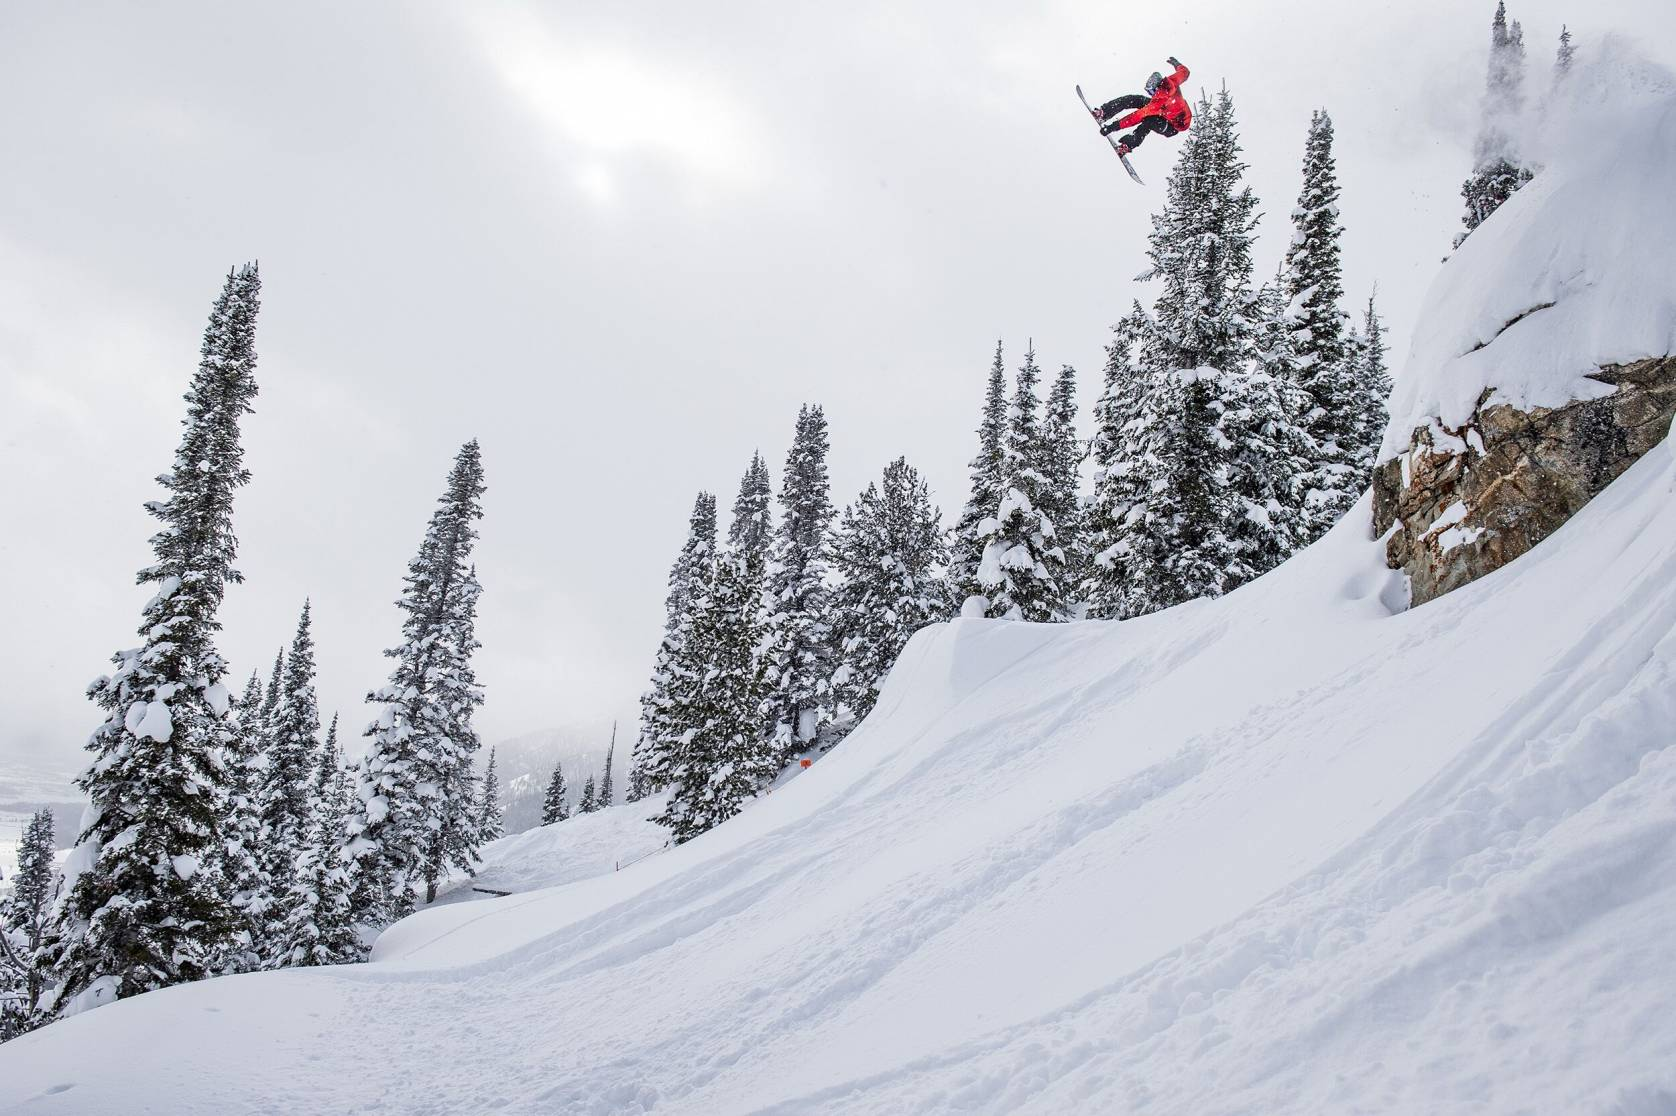 snowboarder in red jacket flying off jump in right of photo at Natural Selection Tour practice session